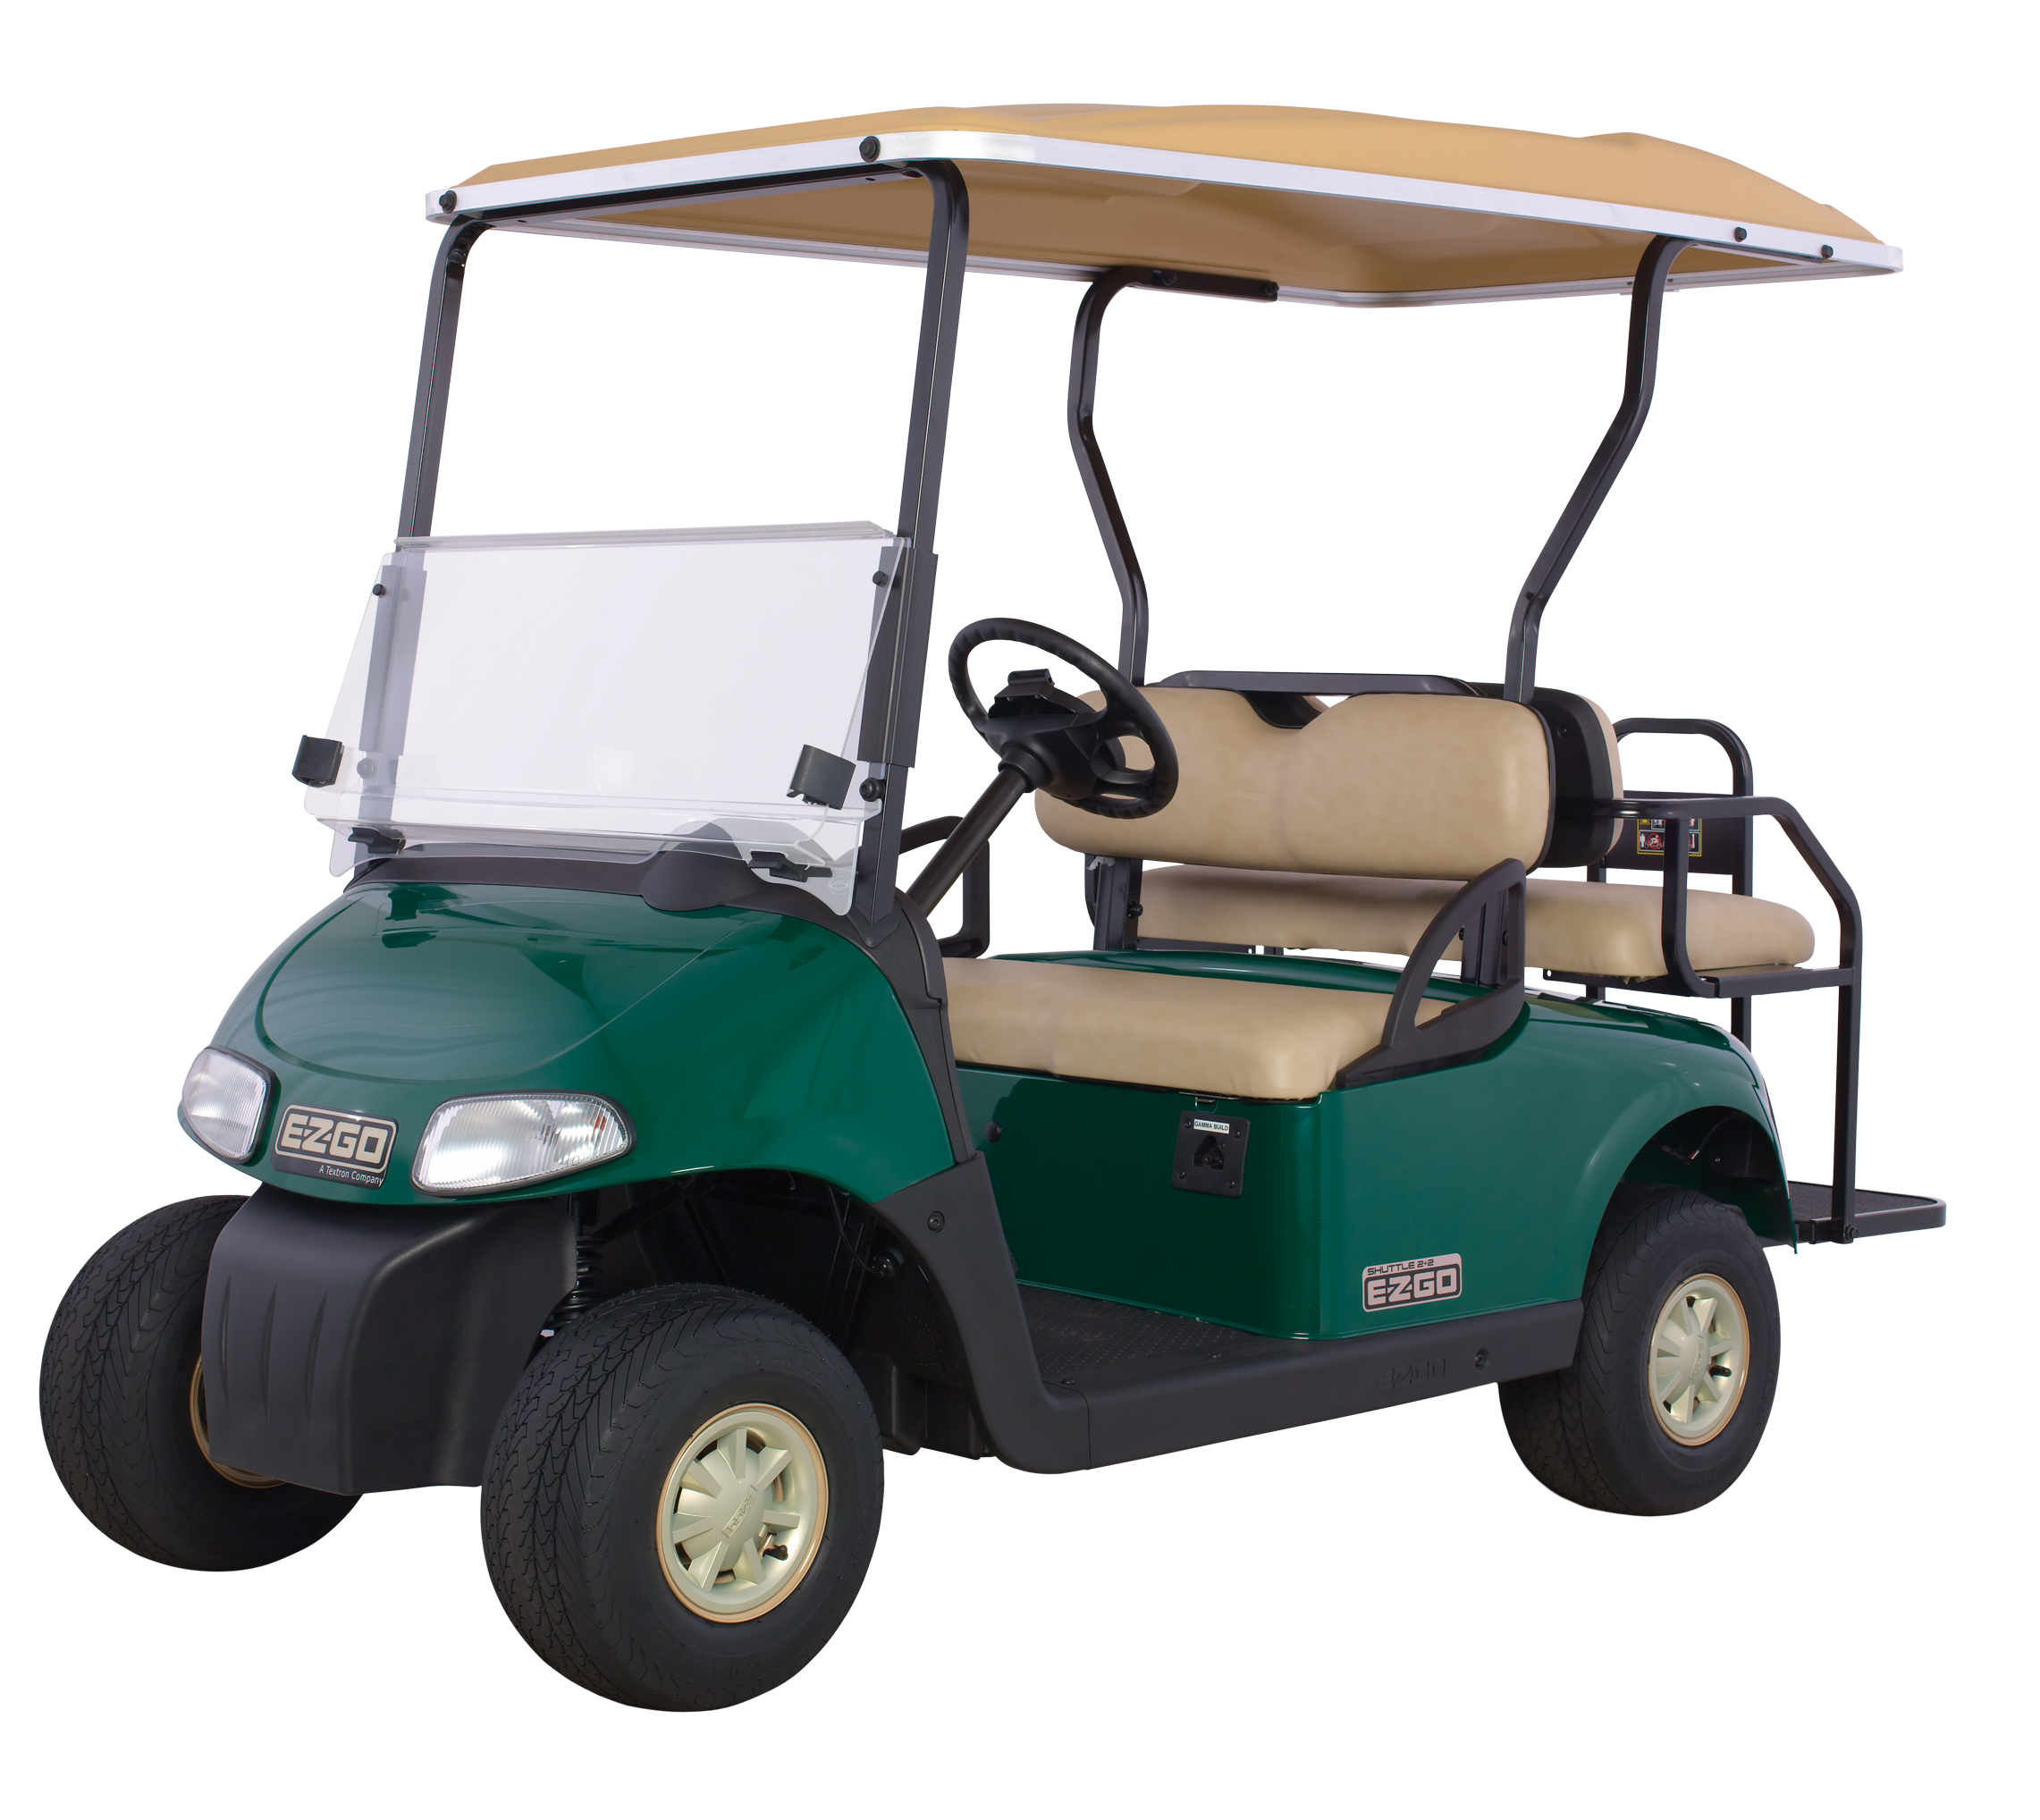 ezgo windshield 1997 honda civic stereo wiring diagram golf cart rental rentals electric or gas carts